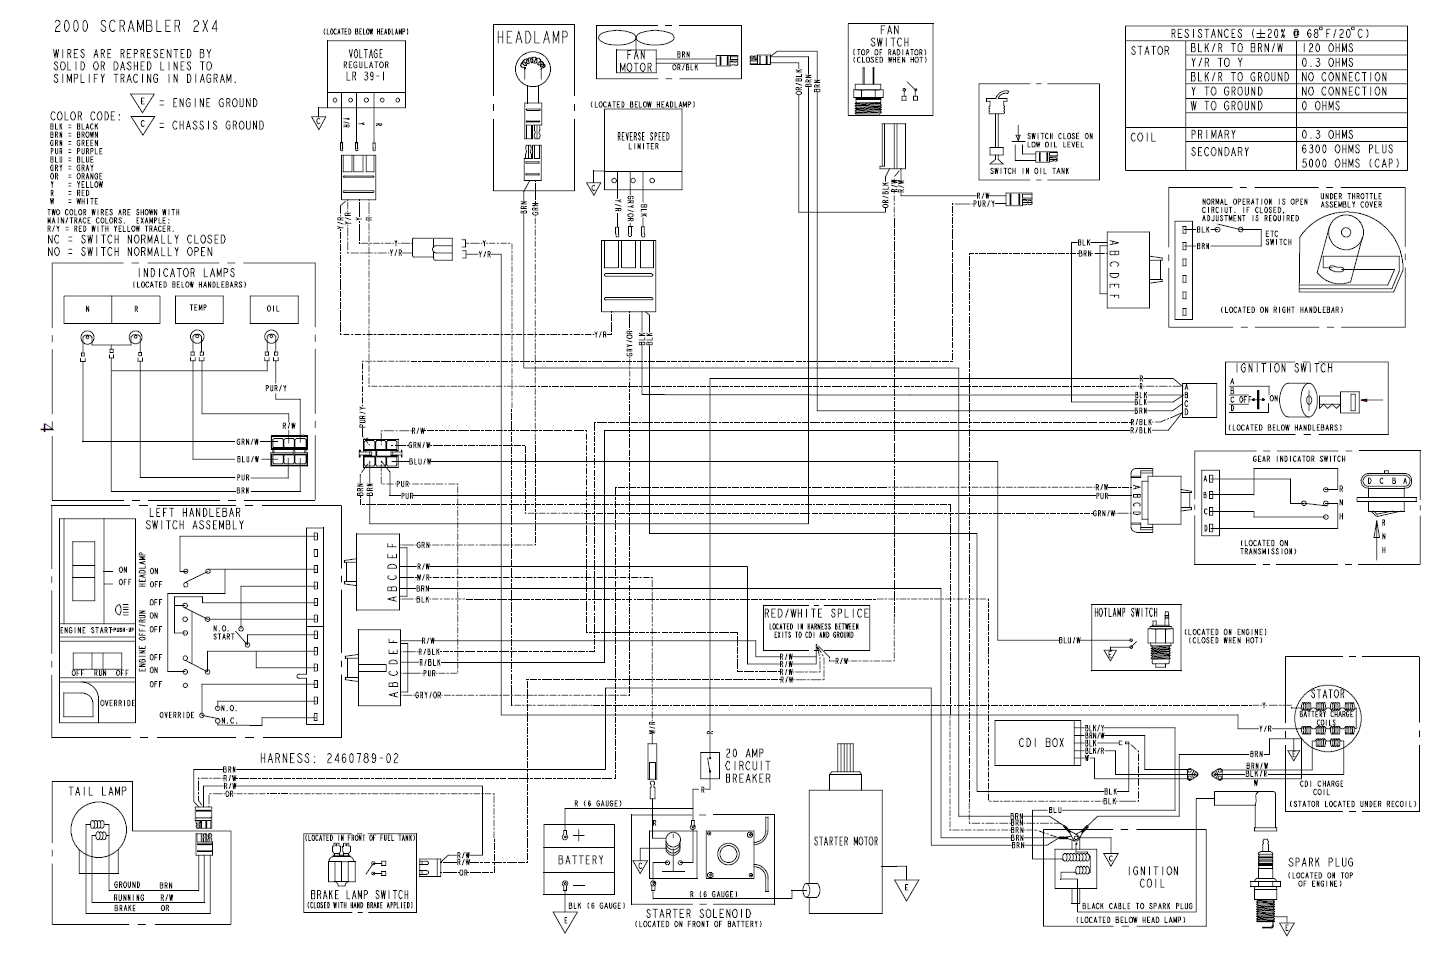 polaris sportsman 850 wiring diagram diagram data schema Single Diagram 2009 polaris ranger wiring diagram library wiring diagram 2016 polaris sportsman 850 wiring diagram 2009 polaris